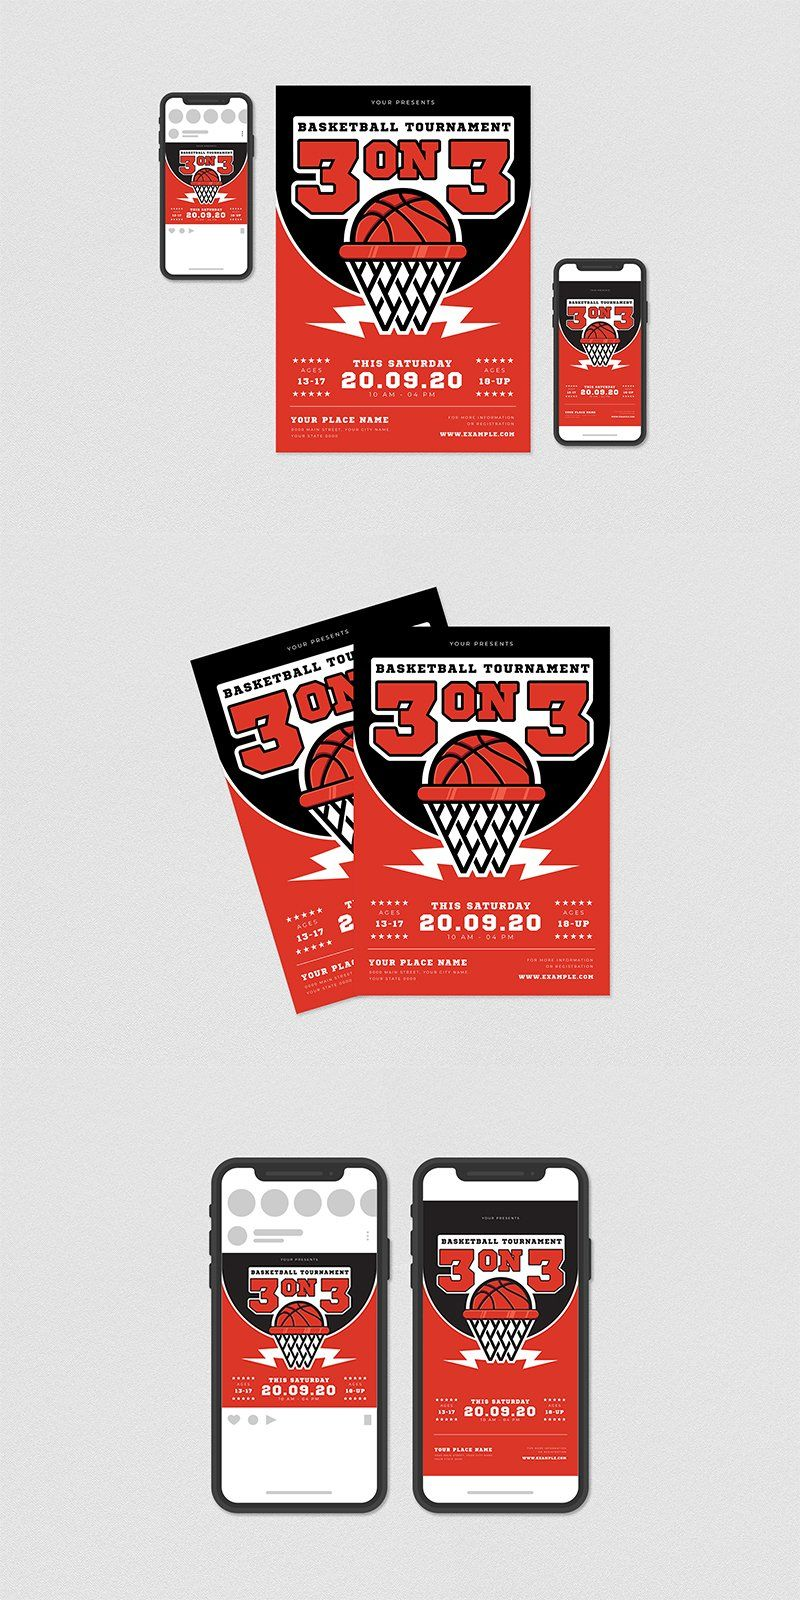 3 On 3 Basketball Tournament Flyer 954896 Flyers Design Bundles Flyer Flyer Design Flyer Design Templates